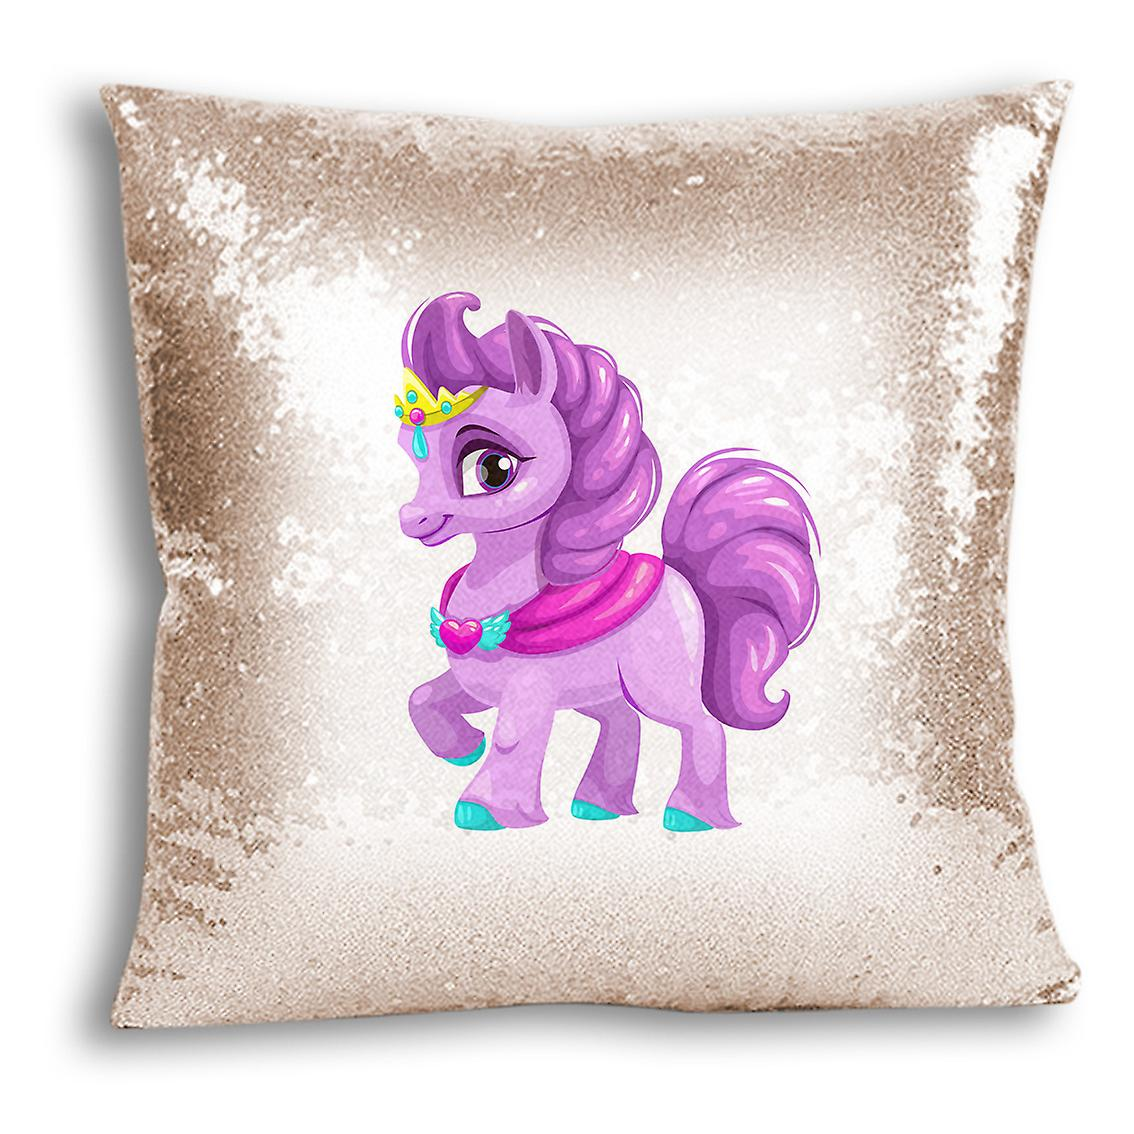 Cover Champagne tronixsUnicorn Sequin Printed Decor Design Home CushionPillow 18 For I 0m8wOnyvN